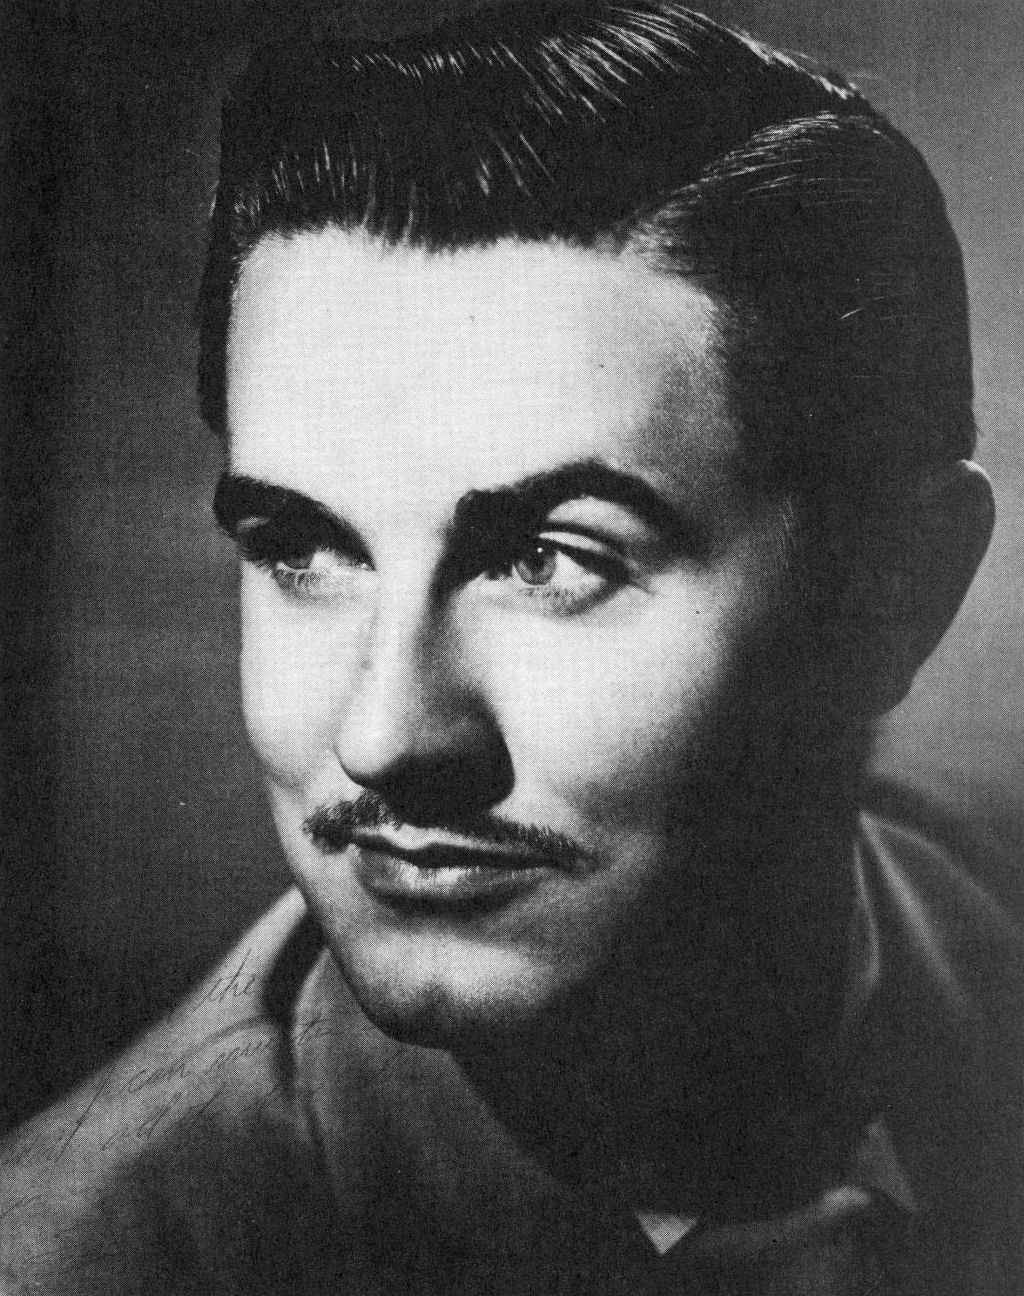 File:Ed wood.jpg